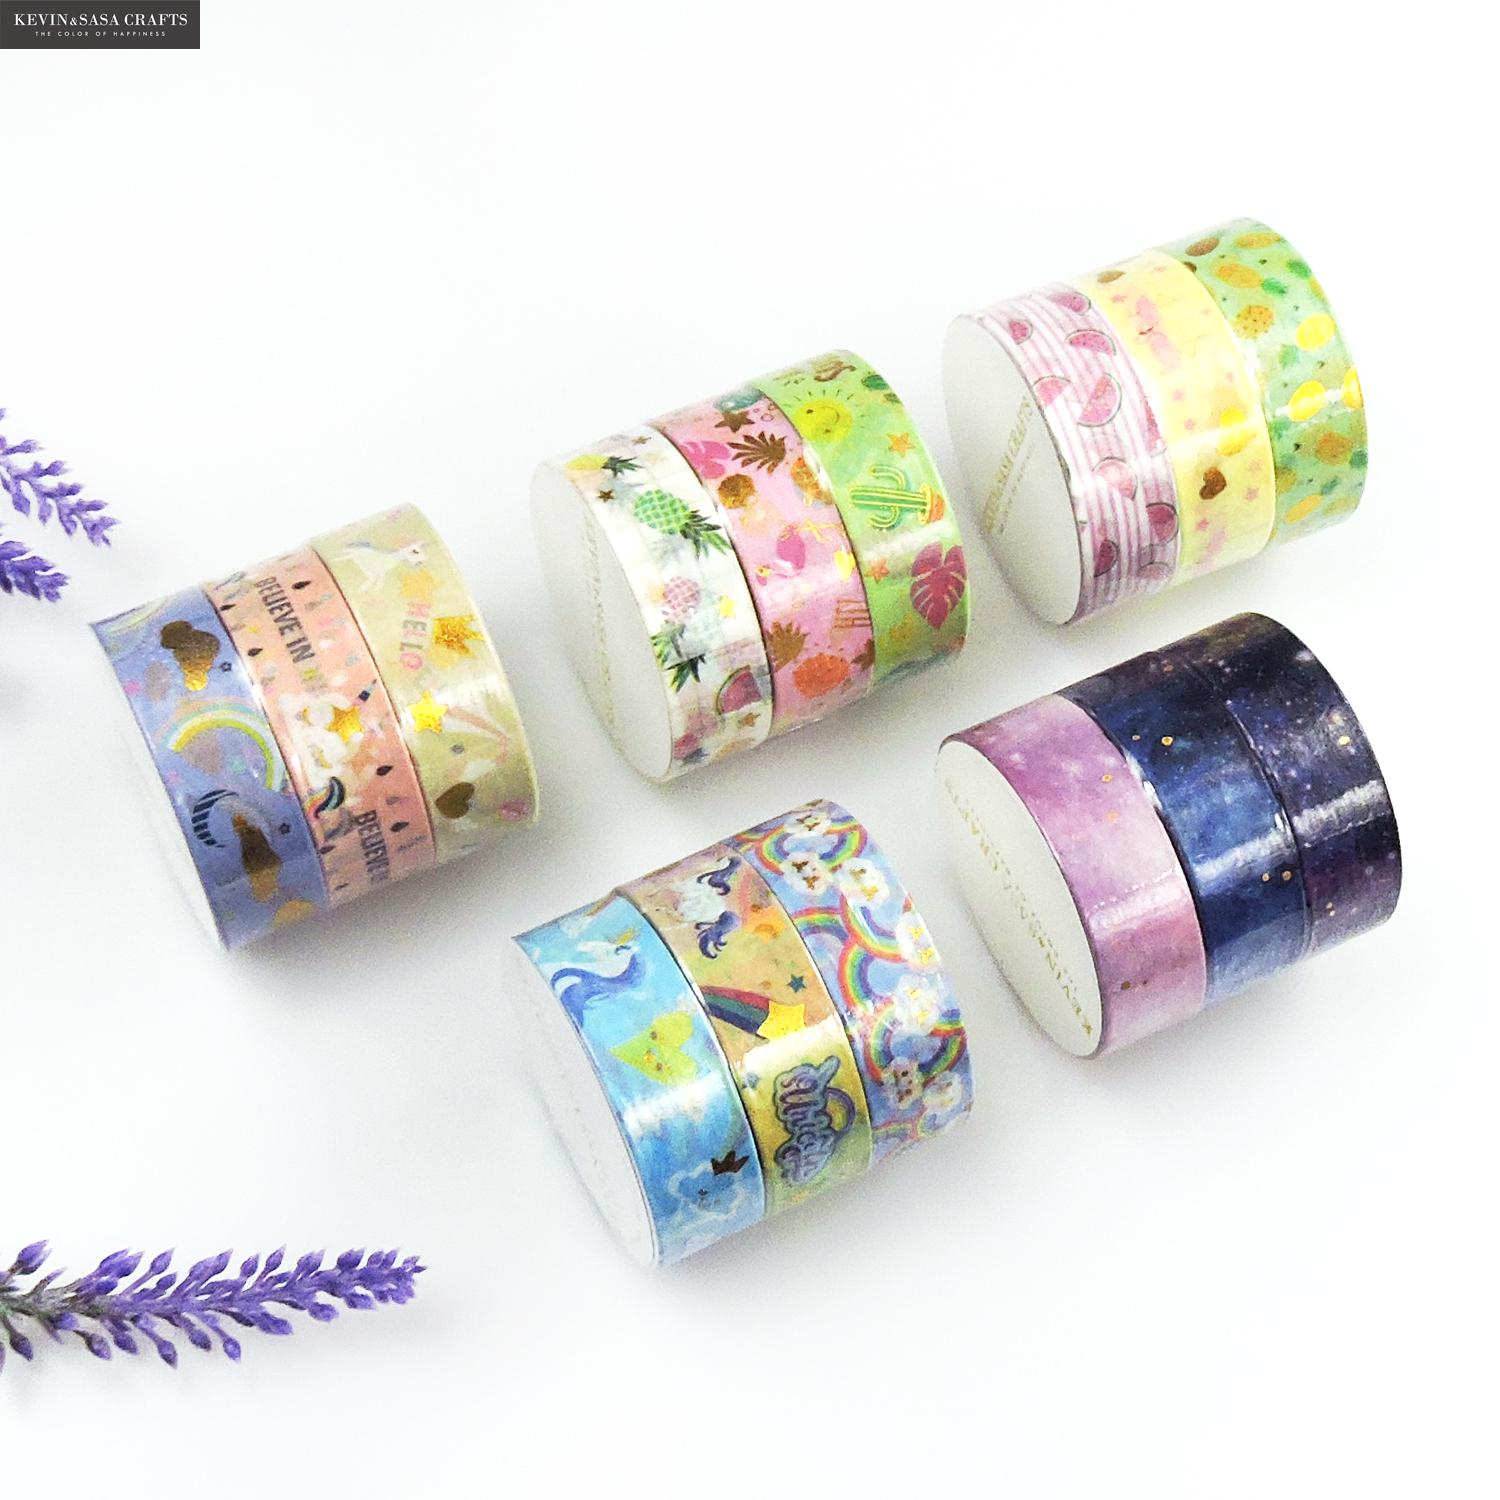 3Rolls/Set Washi Masking Tape Set Animal Fruits Paper Masking Tapes Japanese 15mm X 5m Washi Tape Diy Scrapbooking Sticker Tape